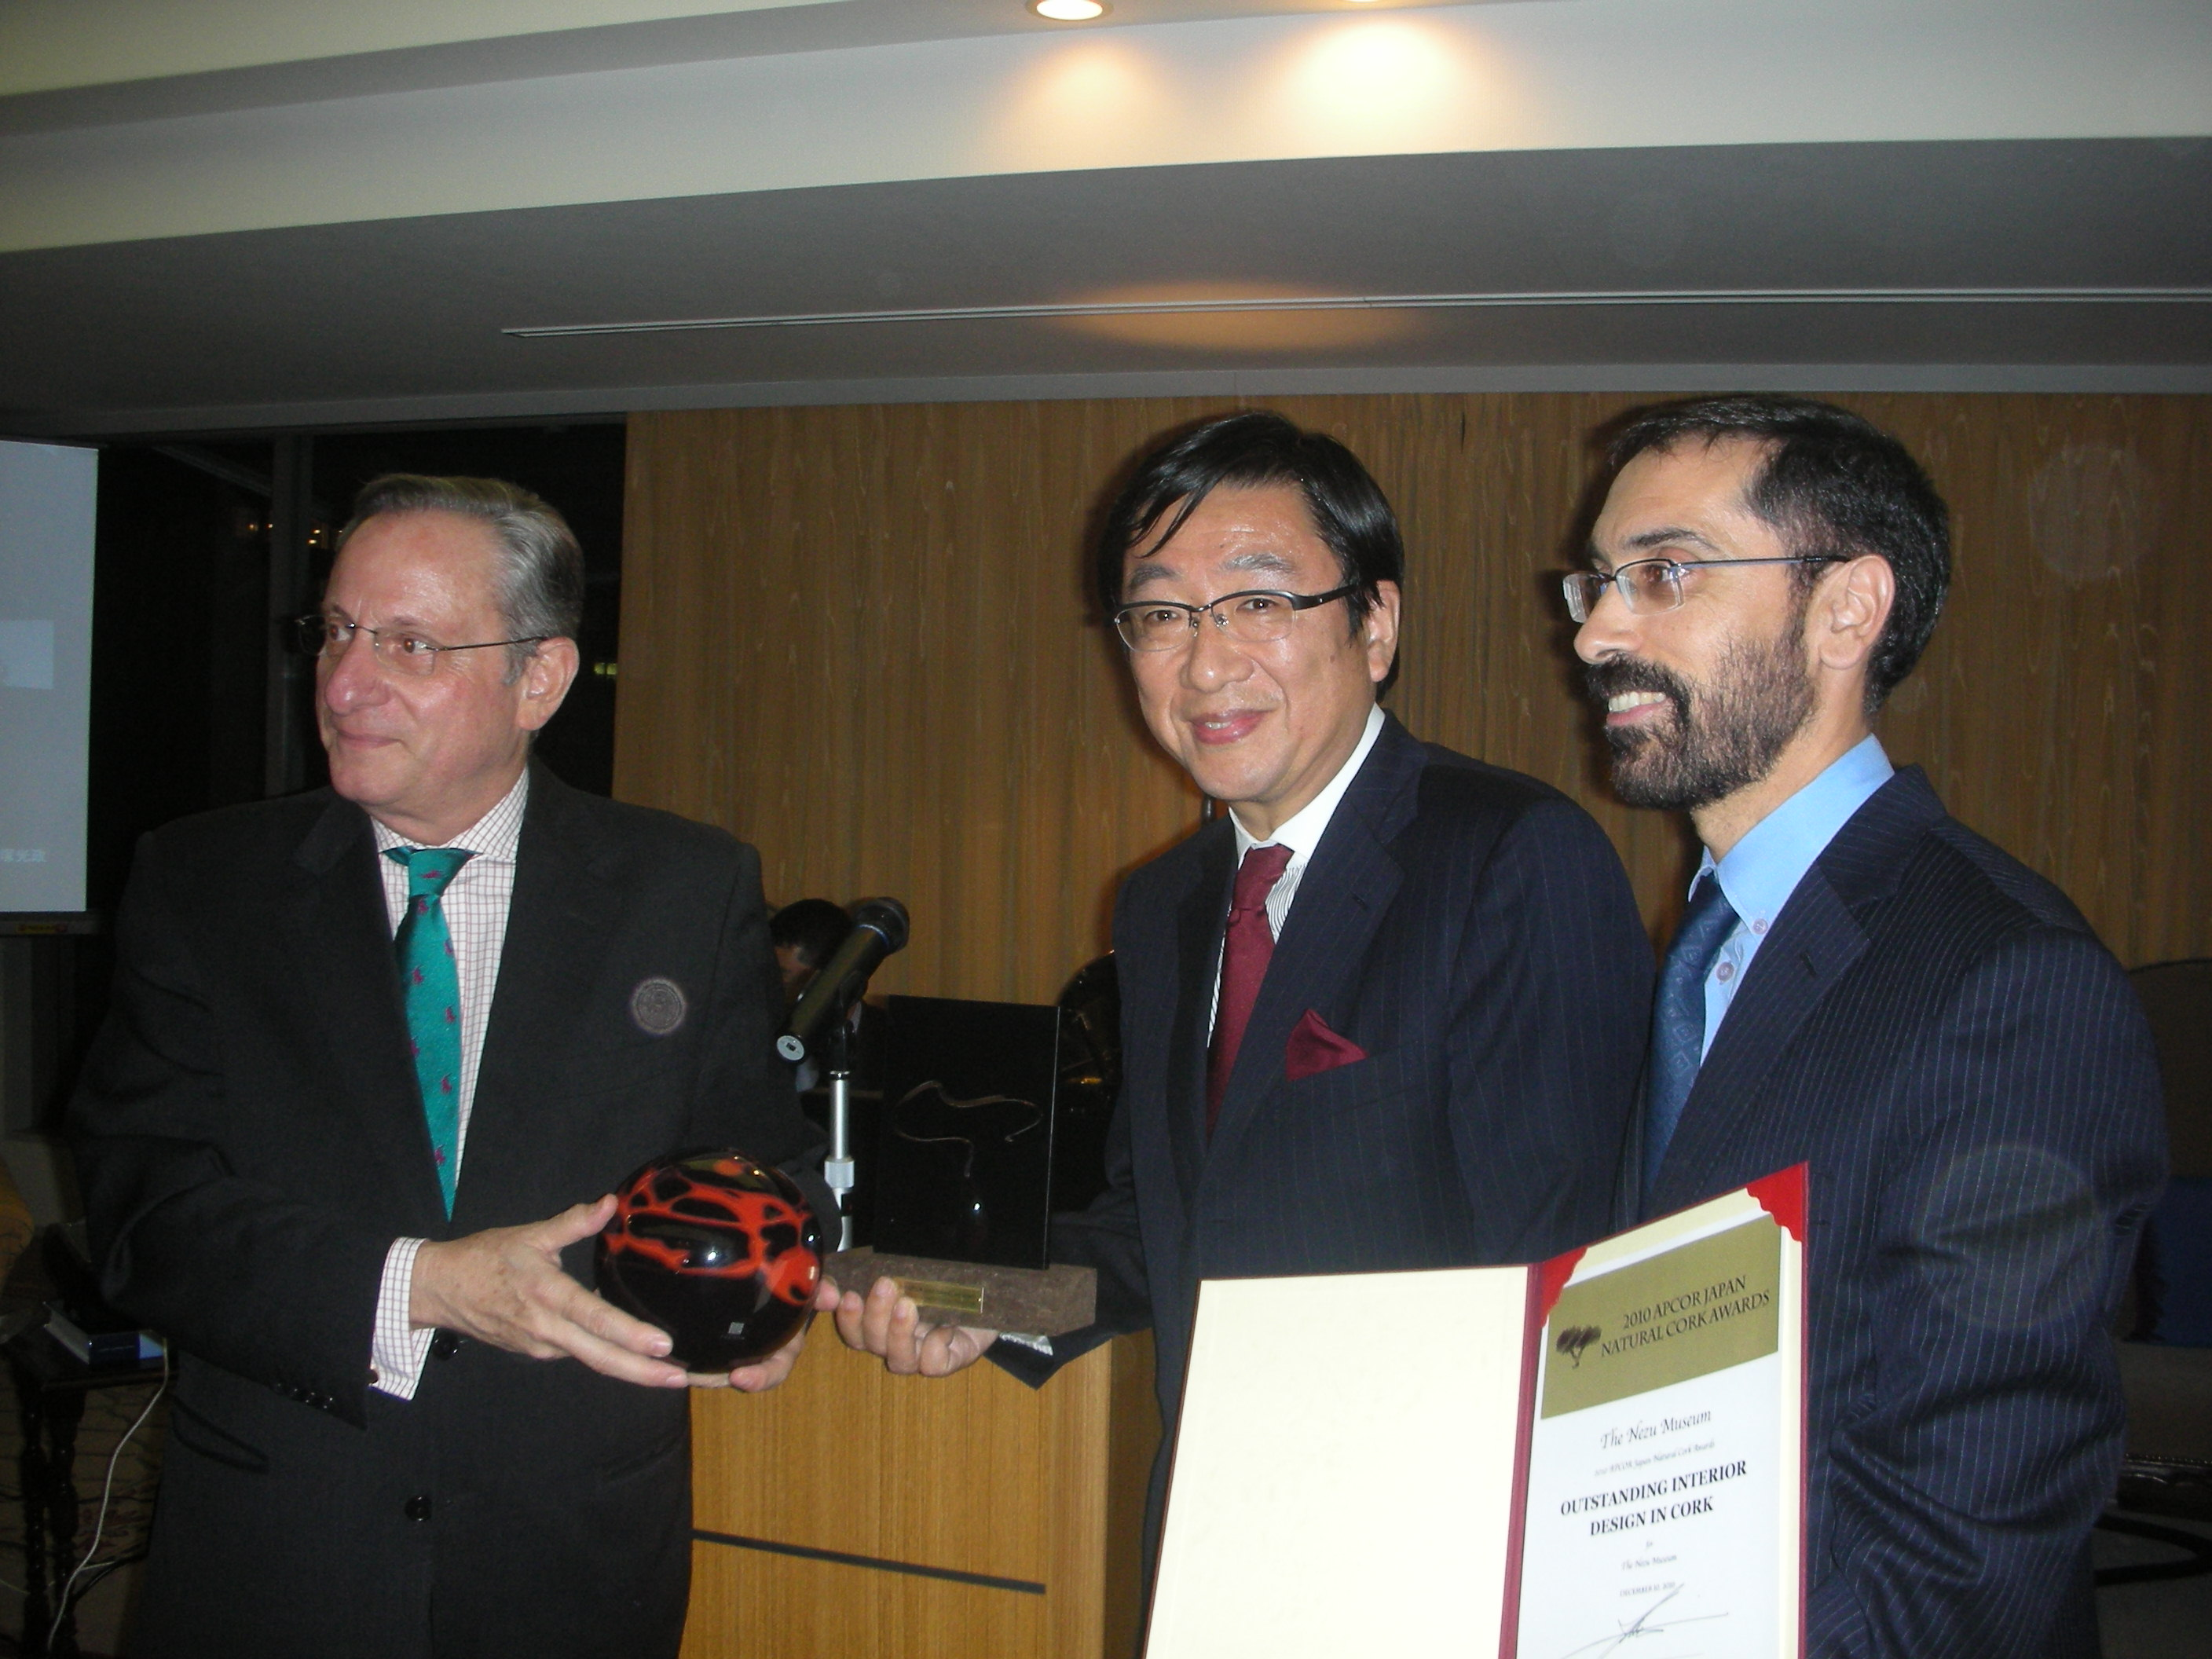 His Excellency the Ambassador of Portugal in Japan João Pedro Zanatti (left) presents award to Nezu Museum Director Koichi Nezu (center) at awards ceremony. Also in picture: APCOR Campaign Representative in Japan Paulo Trancoso (right)